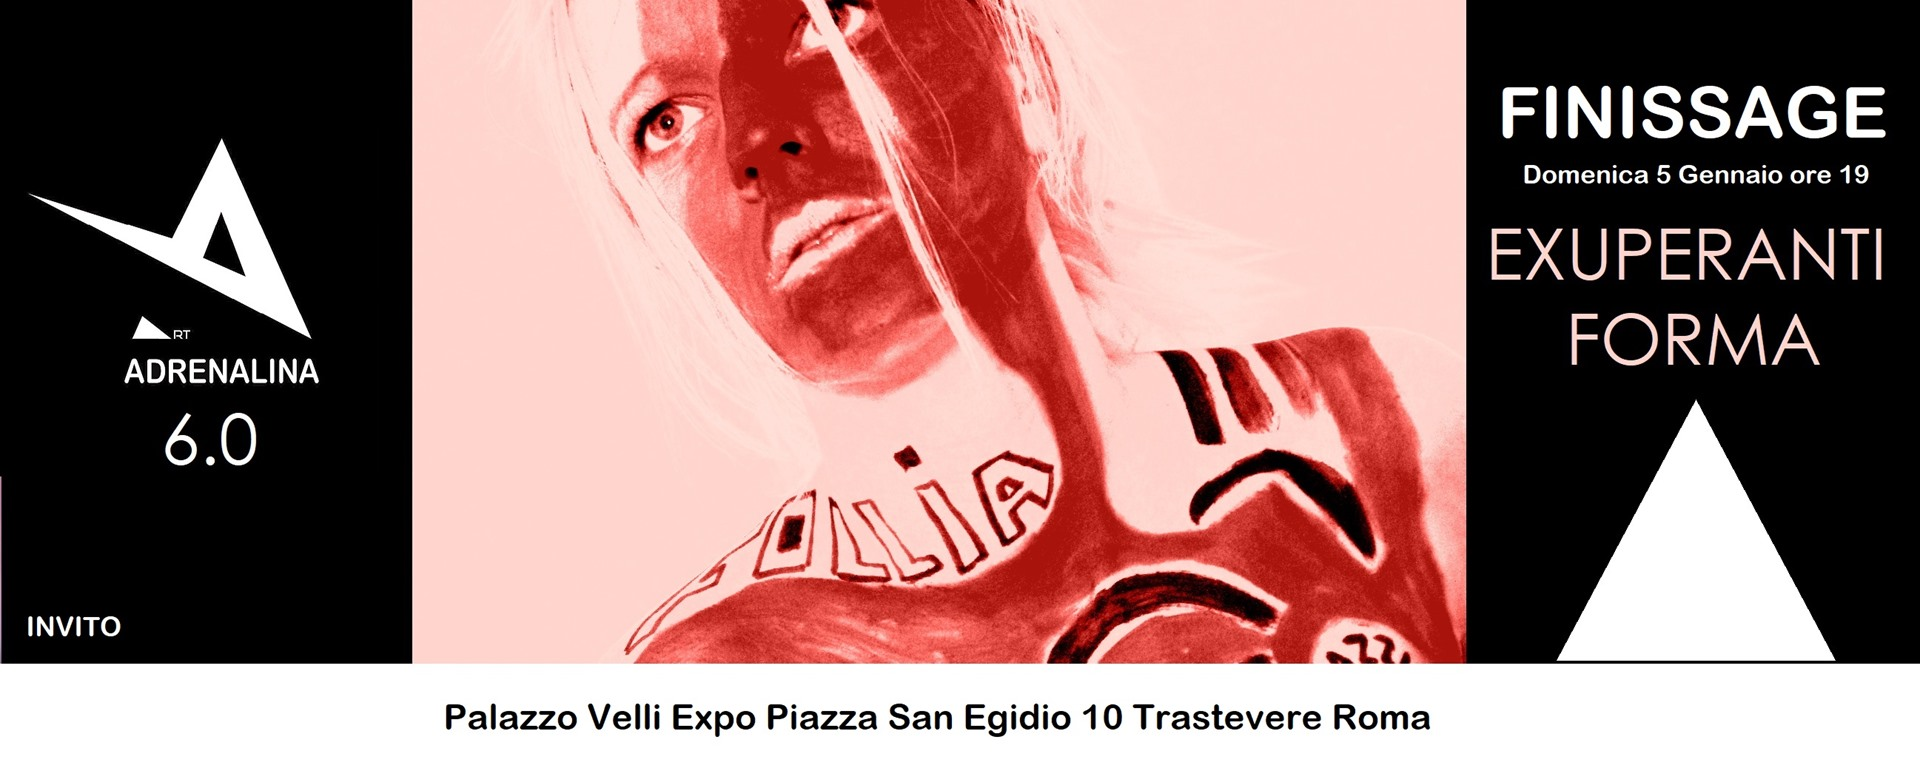 FINISSAGE MOSTRA EXUPERANTI FORMA